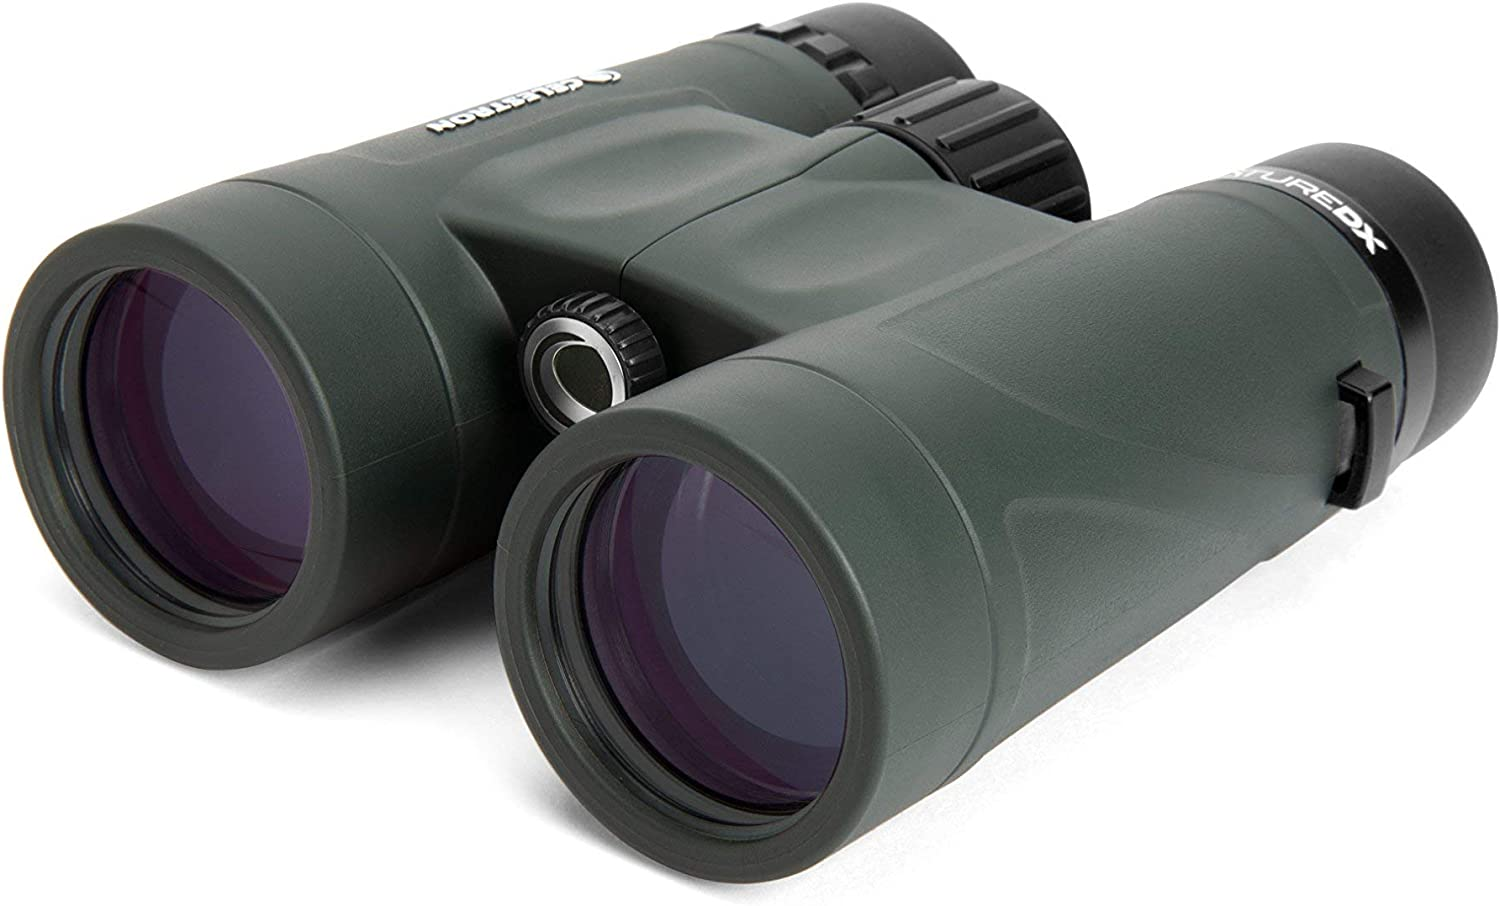 Celestron 71328Nature DX Binocular (Army Green) (Certified Refurbished)